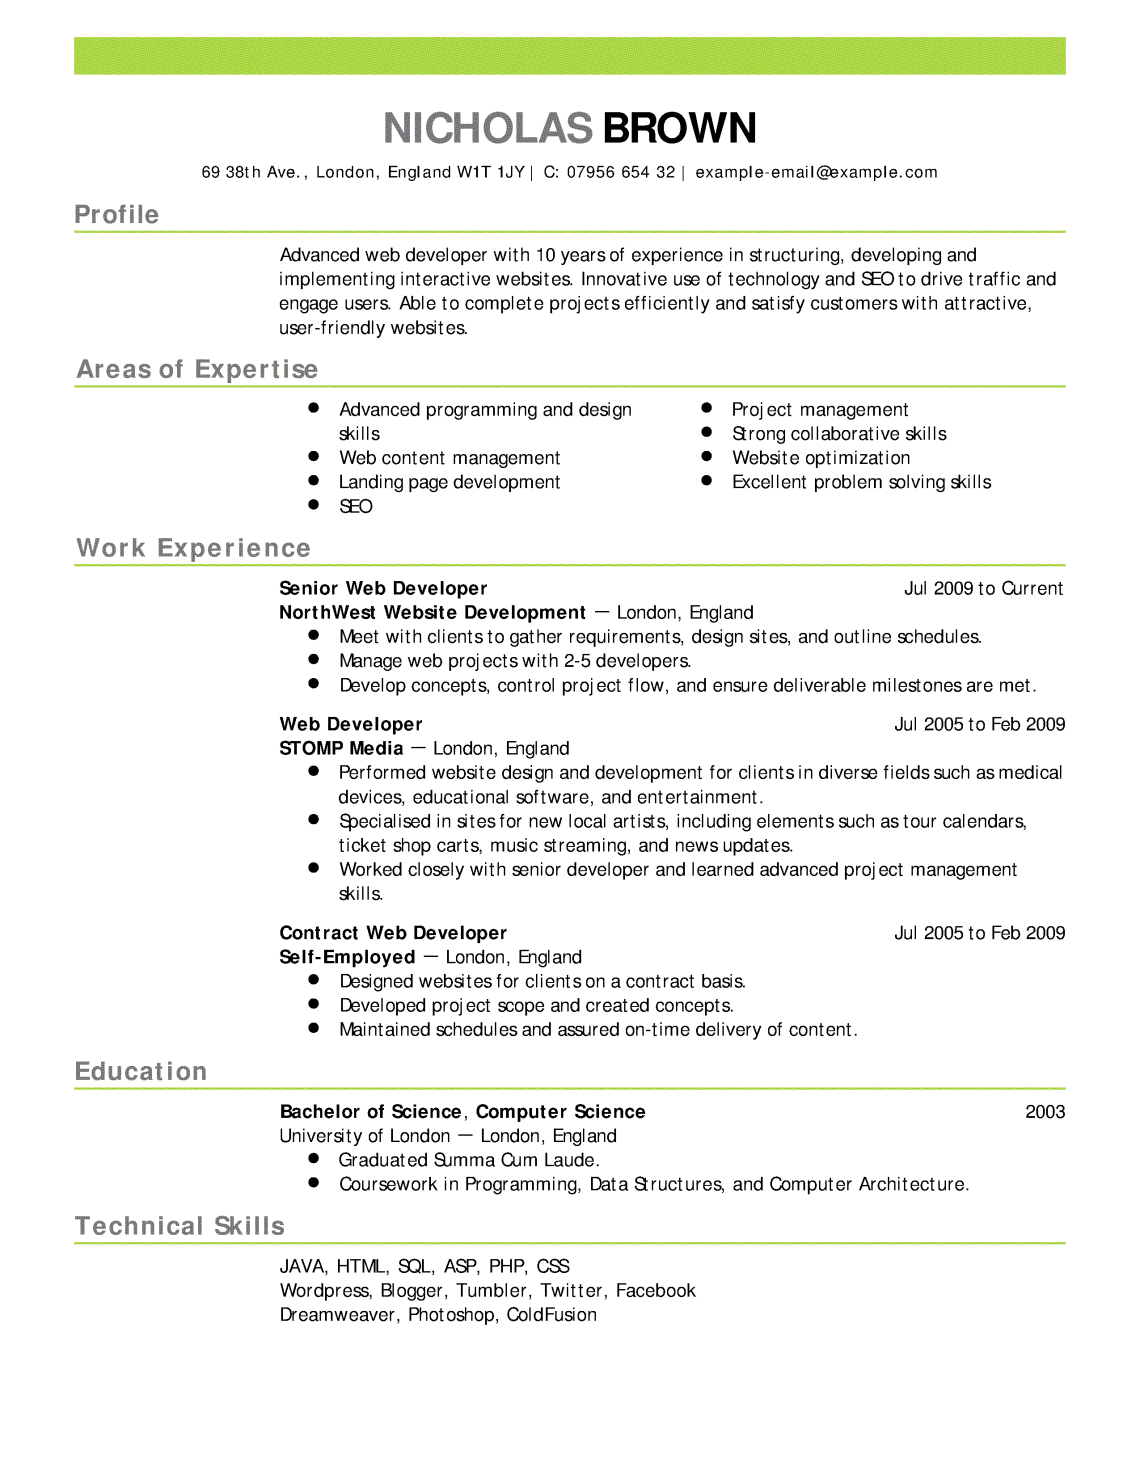 Survey Cover Letter Template - Cover Letter for Survey Questionnaire 11 Od Specialist Cover Letter